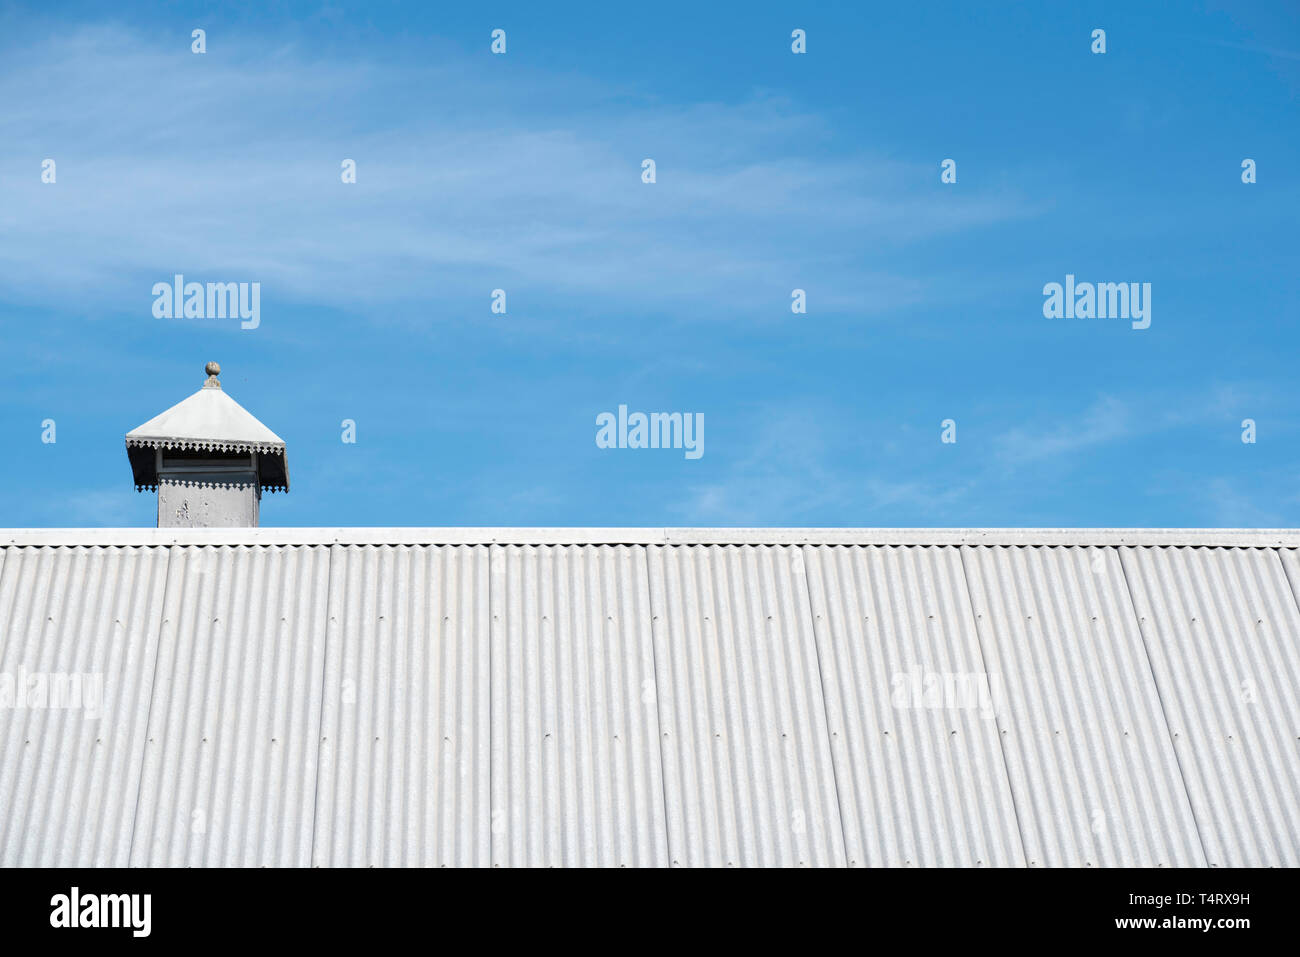 Galvanized corrugated iron roofing at the Parramatta Campus of the University of Western Sydney, NSW, Australia - Stock Image